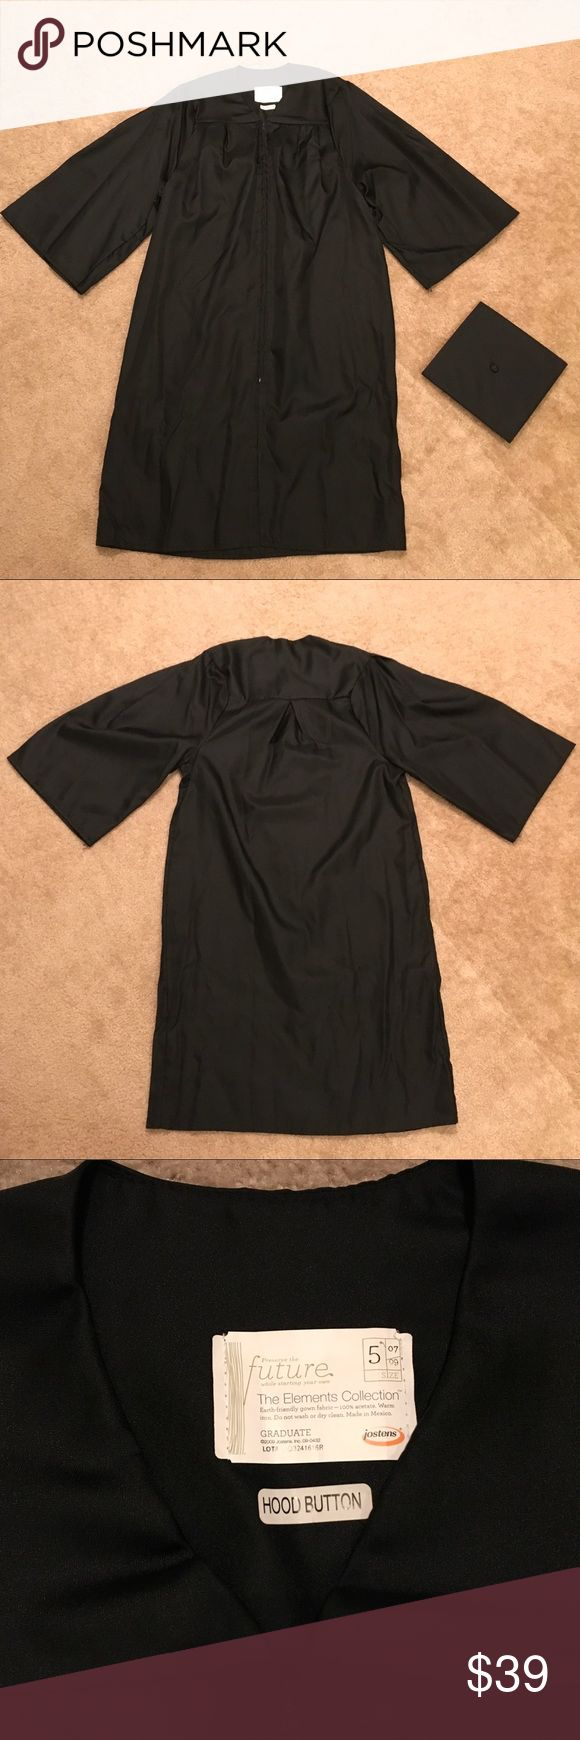 """Graduation Gown Regalia Bachelor Master with Cap This gown is supposed to fit an individual of height between 5'7"""" and 5'9"""".  However, it is a personal preference and school's instruction on how long the gown should be.  It is only worn once (about 3 hours).  I will include the Cap (without the tassels as tassels should be school specific).  I wanna see if anyone wants to get these before I take them to donation the end of Oct 2017.  Thank you! Other"""